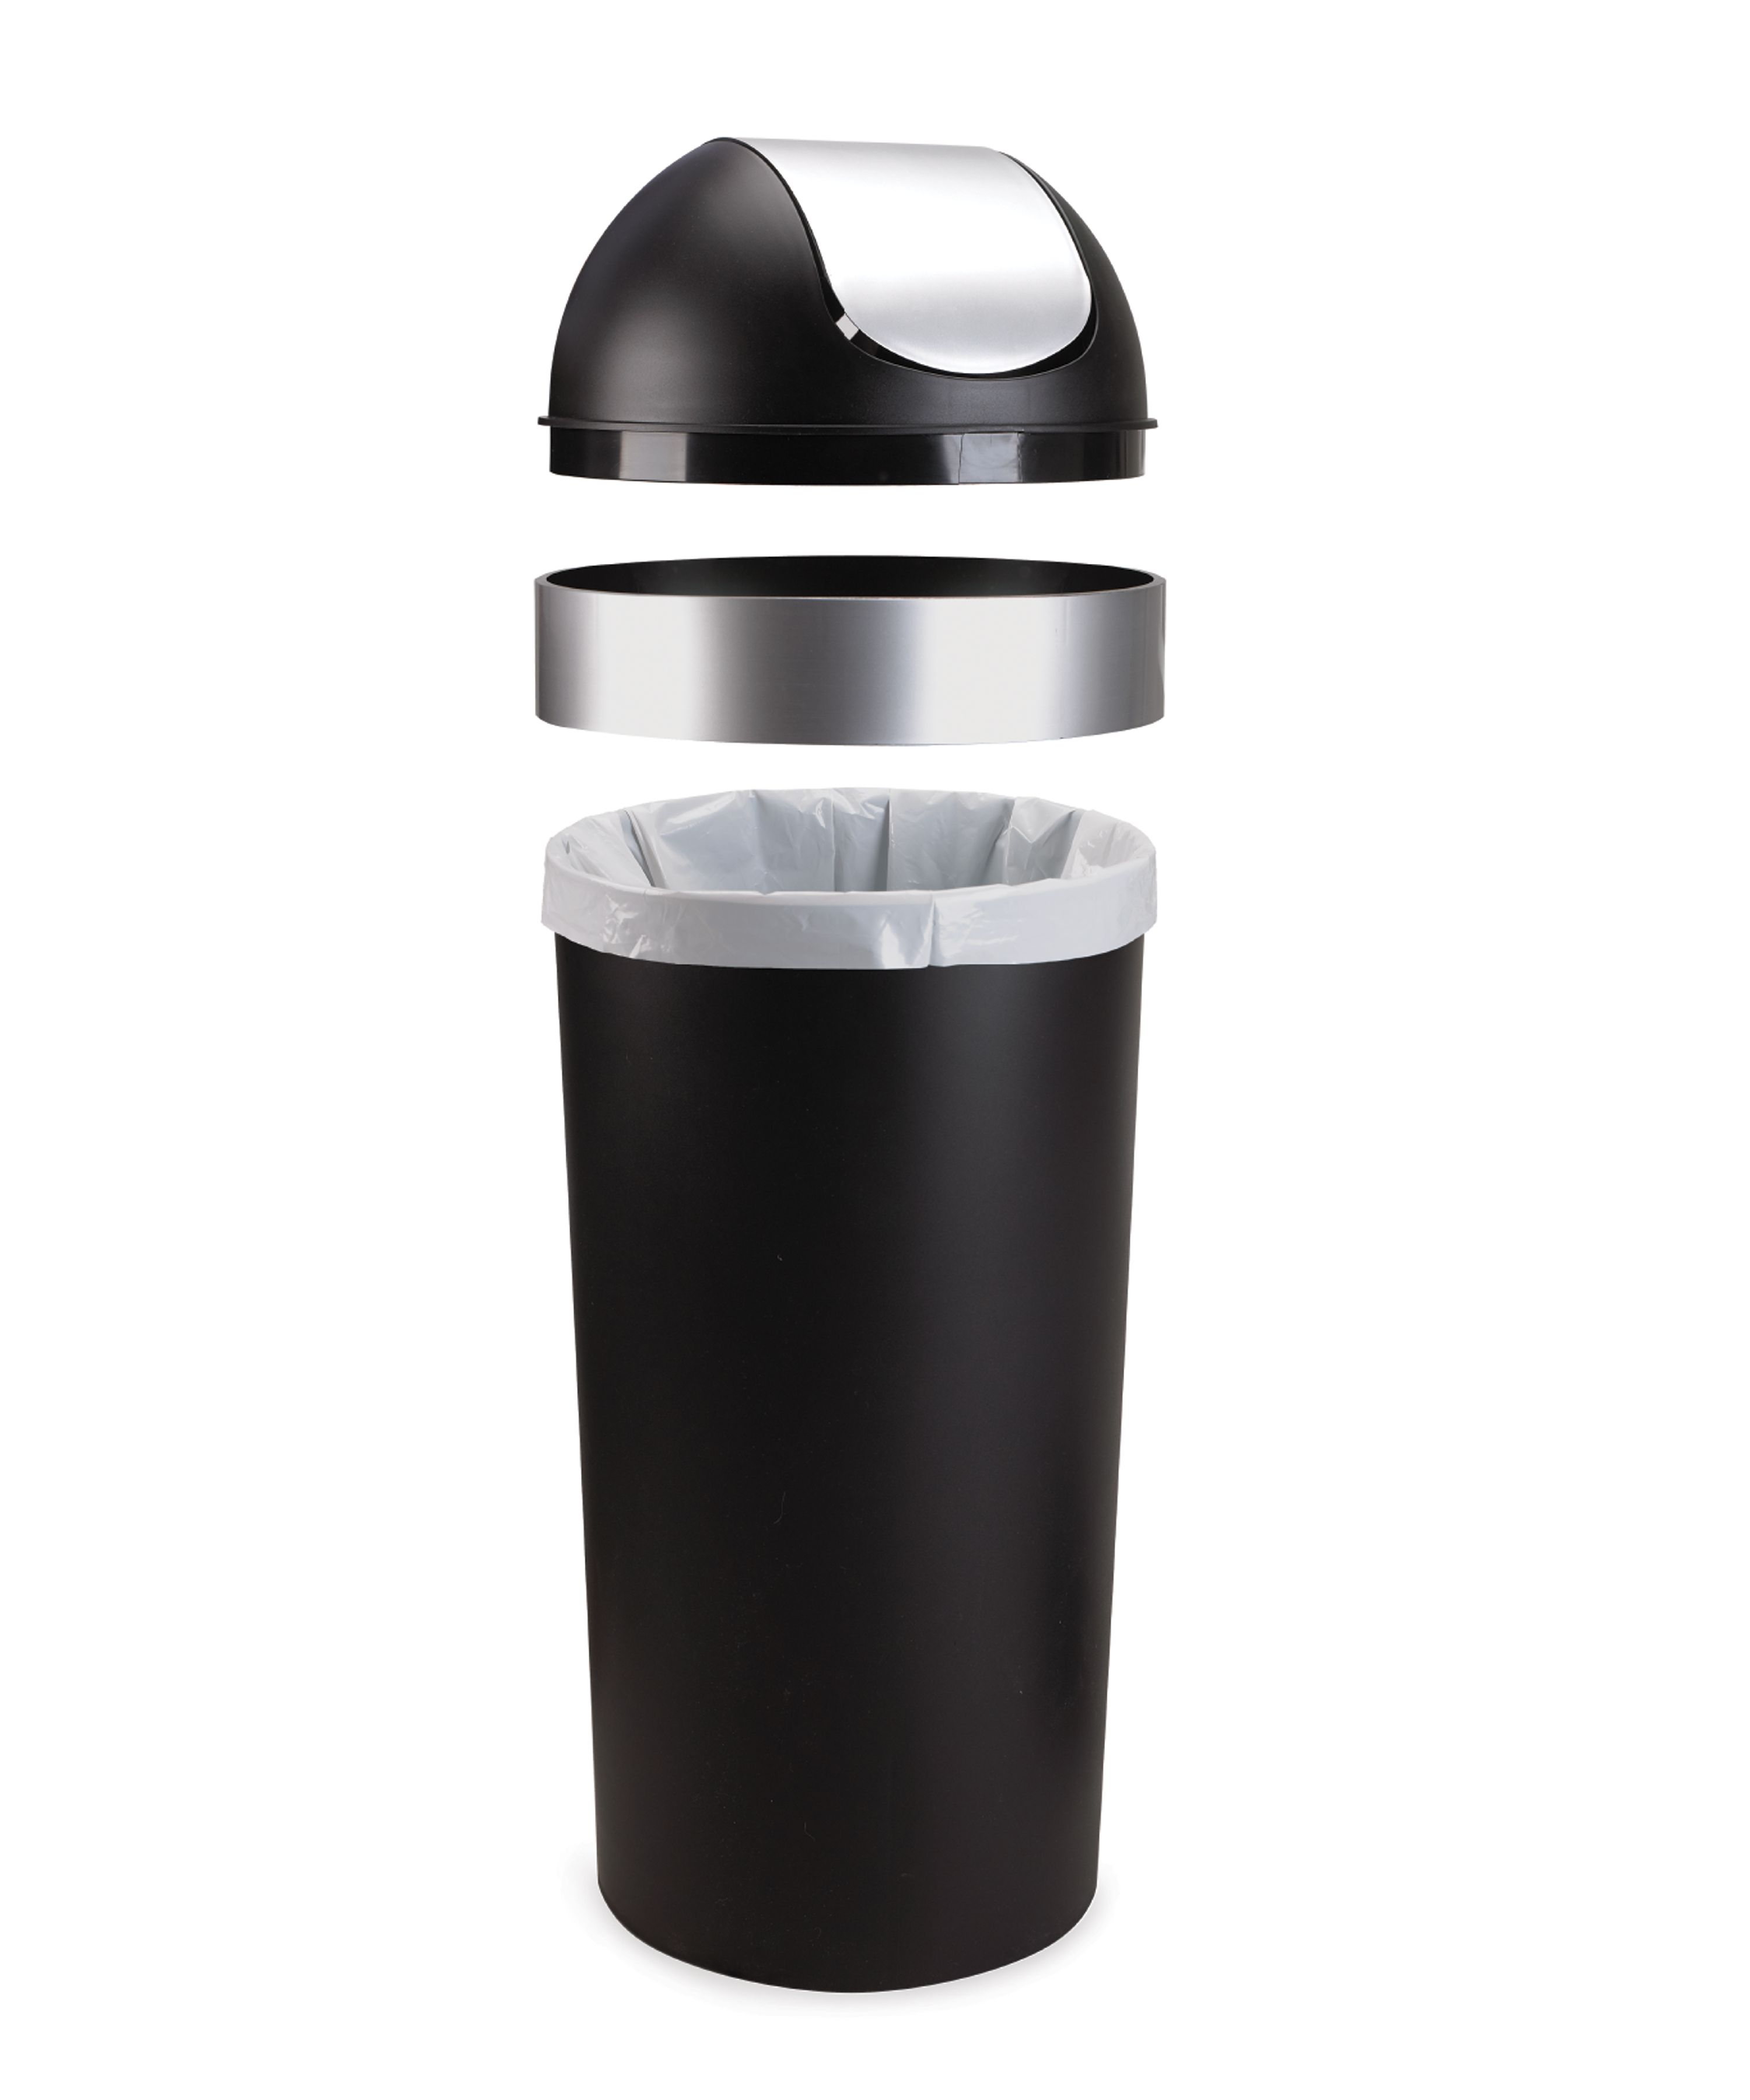 Umbra Venti 16 Gallon Swing Top Kitchen Trash Can Large, 35 Inch